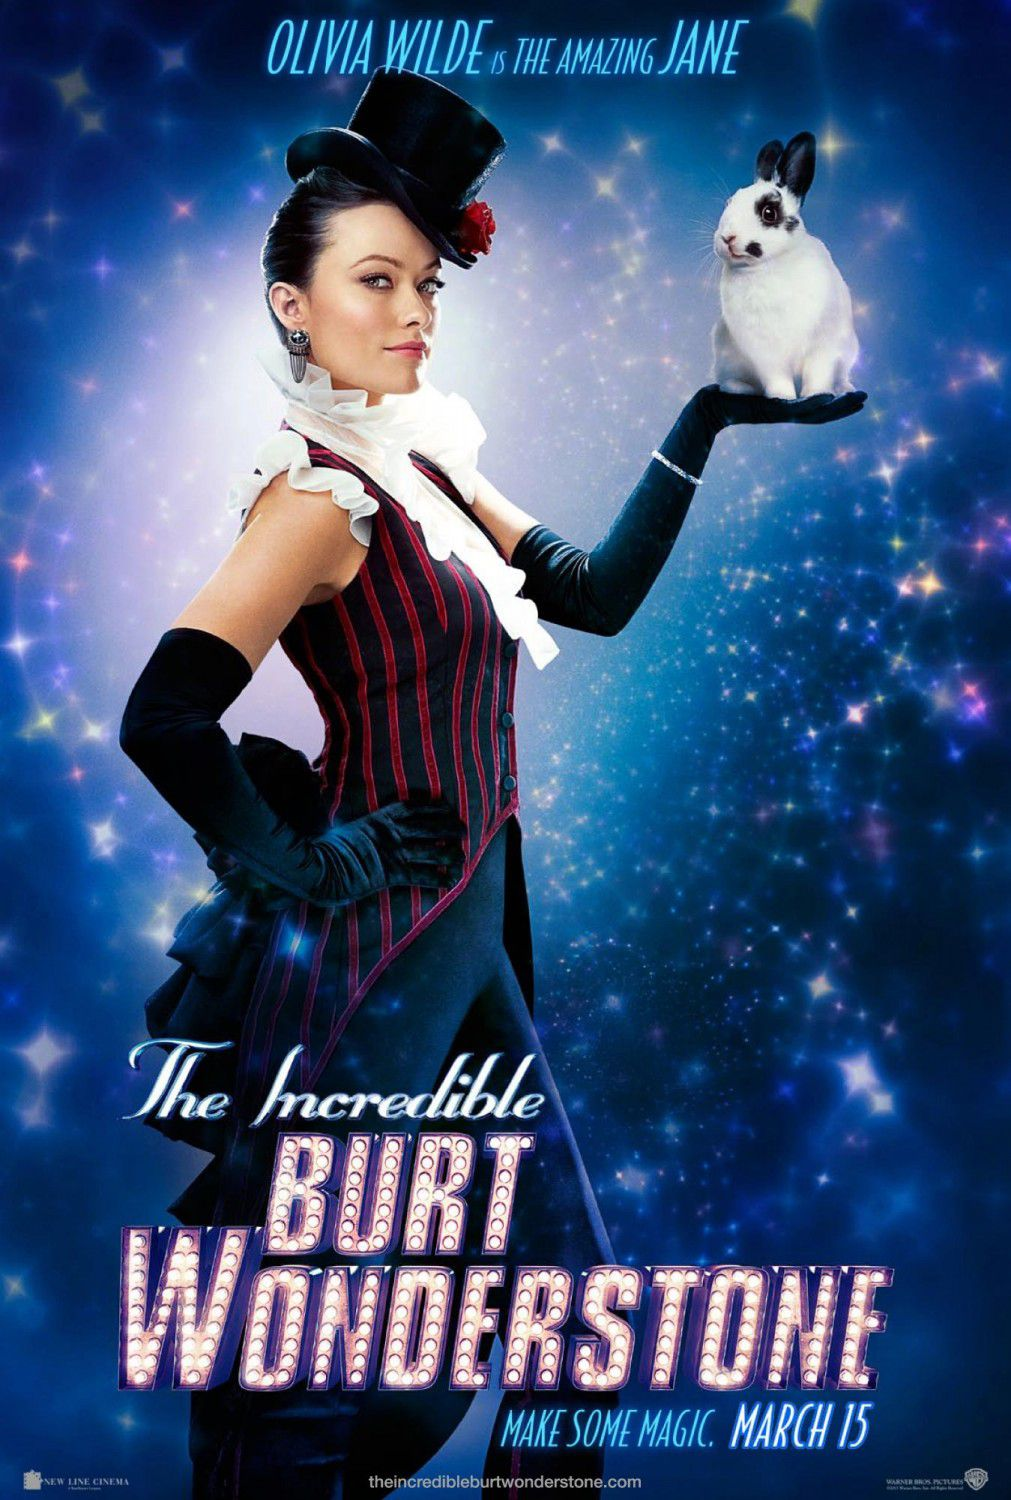 Incredible Burt Wonderstone - Olivia Wilde is the amazing Jane